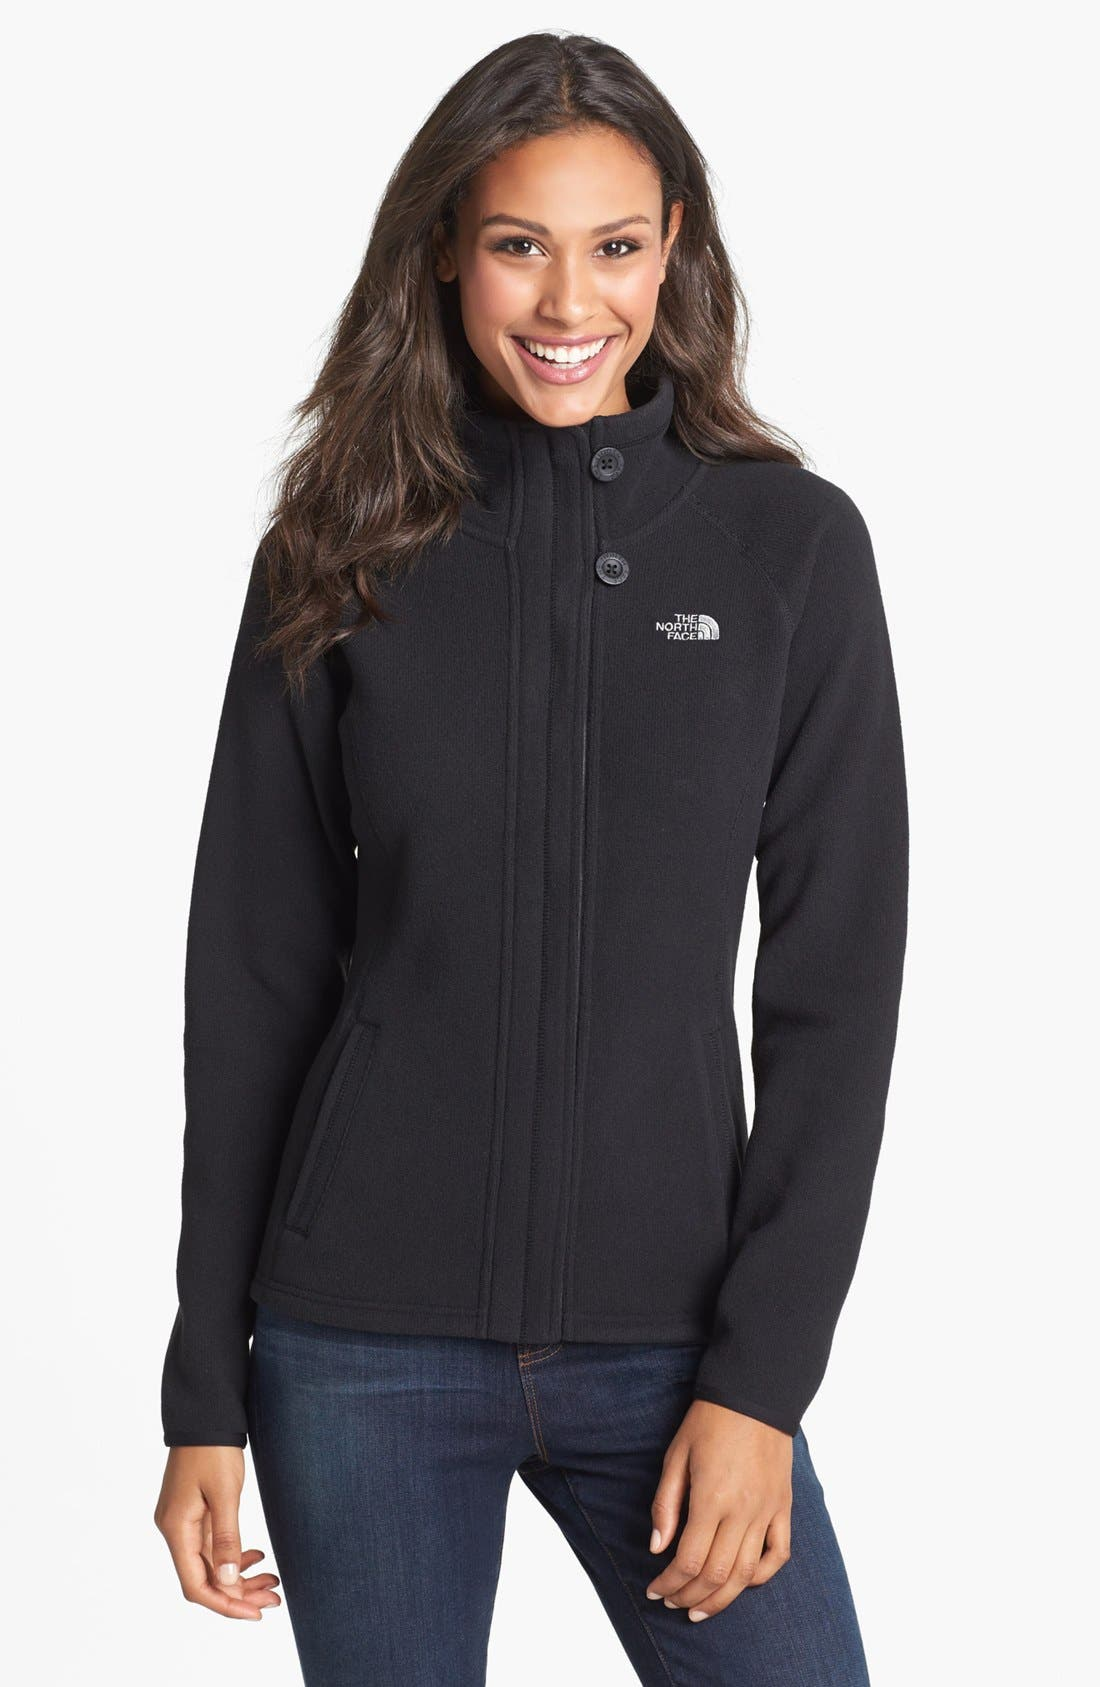 Main Image - The North Face 'Crescent' Full Zip Jacket